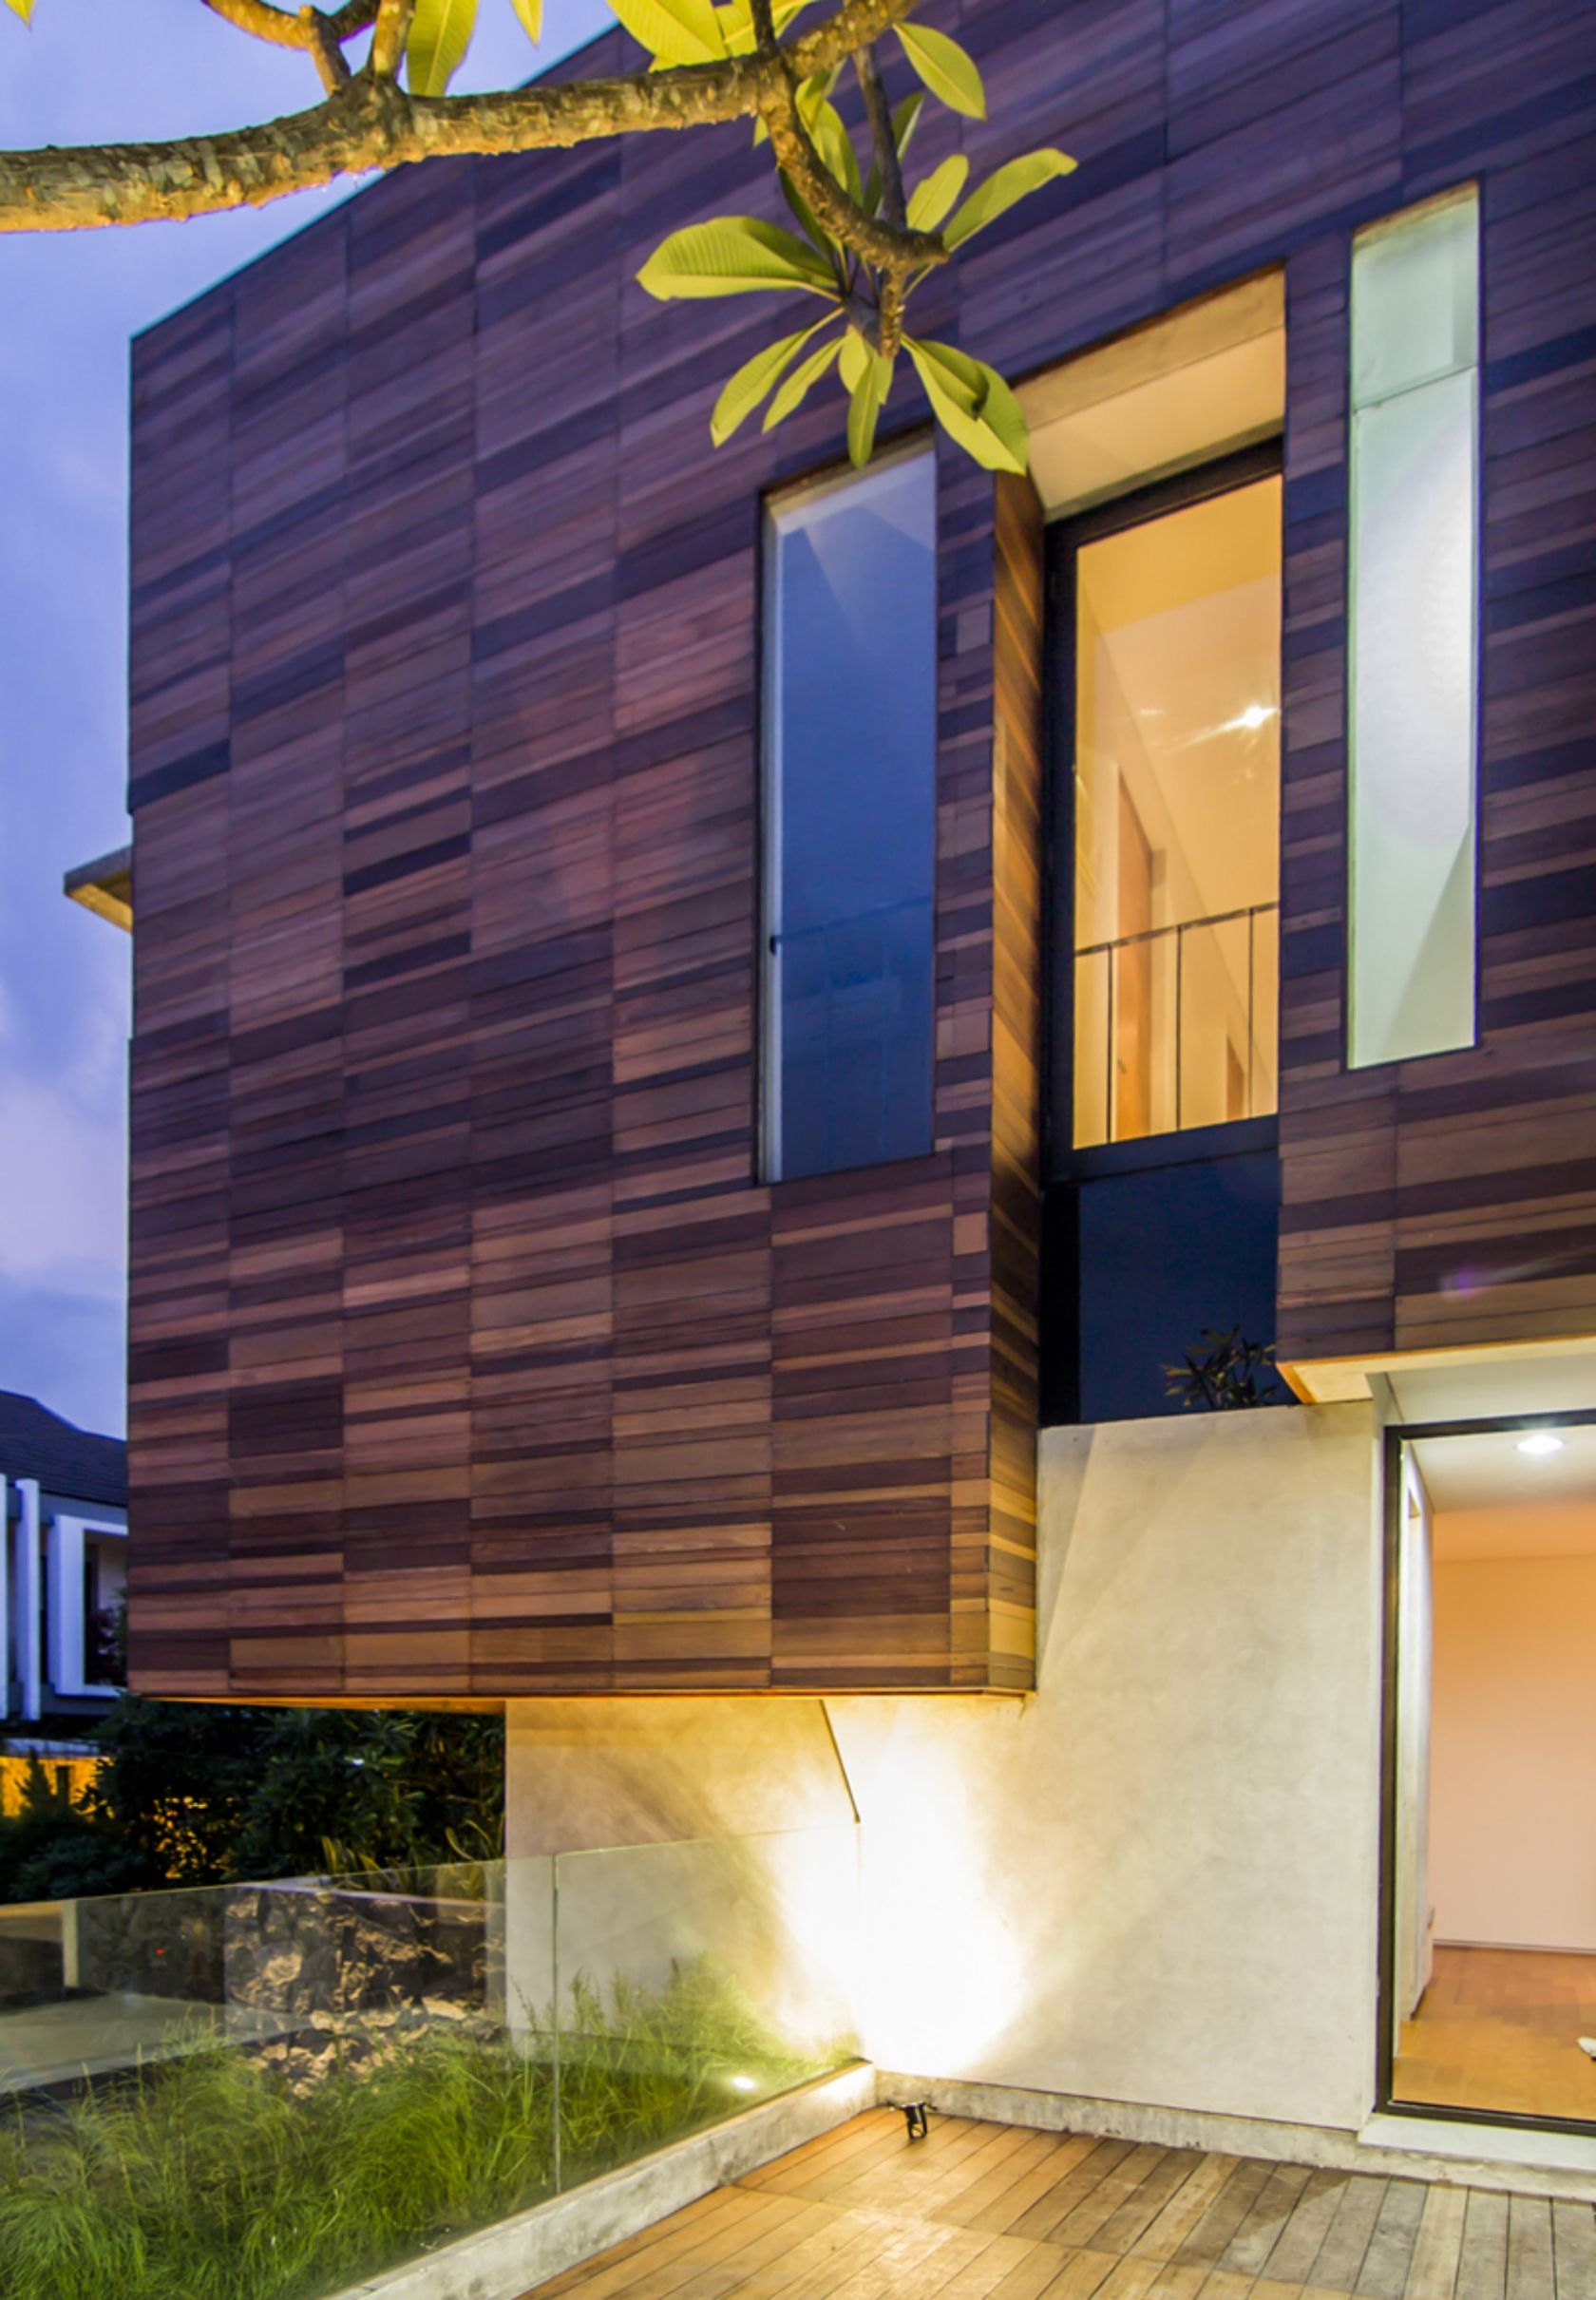 Lumber Shaped Box House Explore Collect And Source Architecture Box Houses Facade House Architecture Details